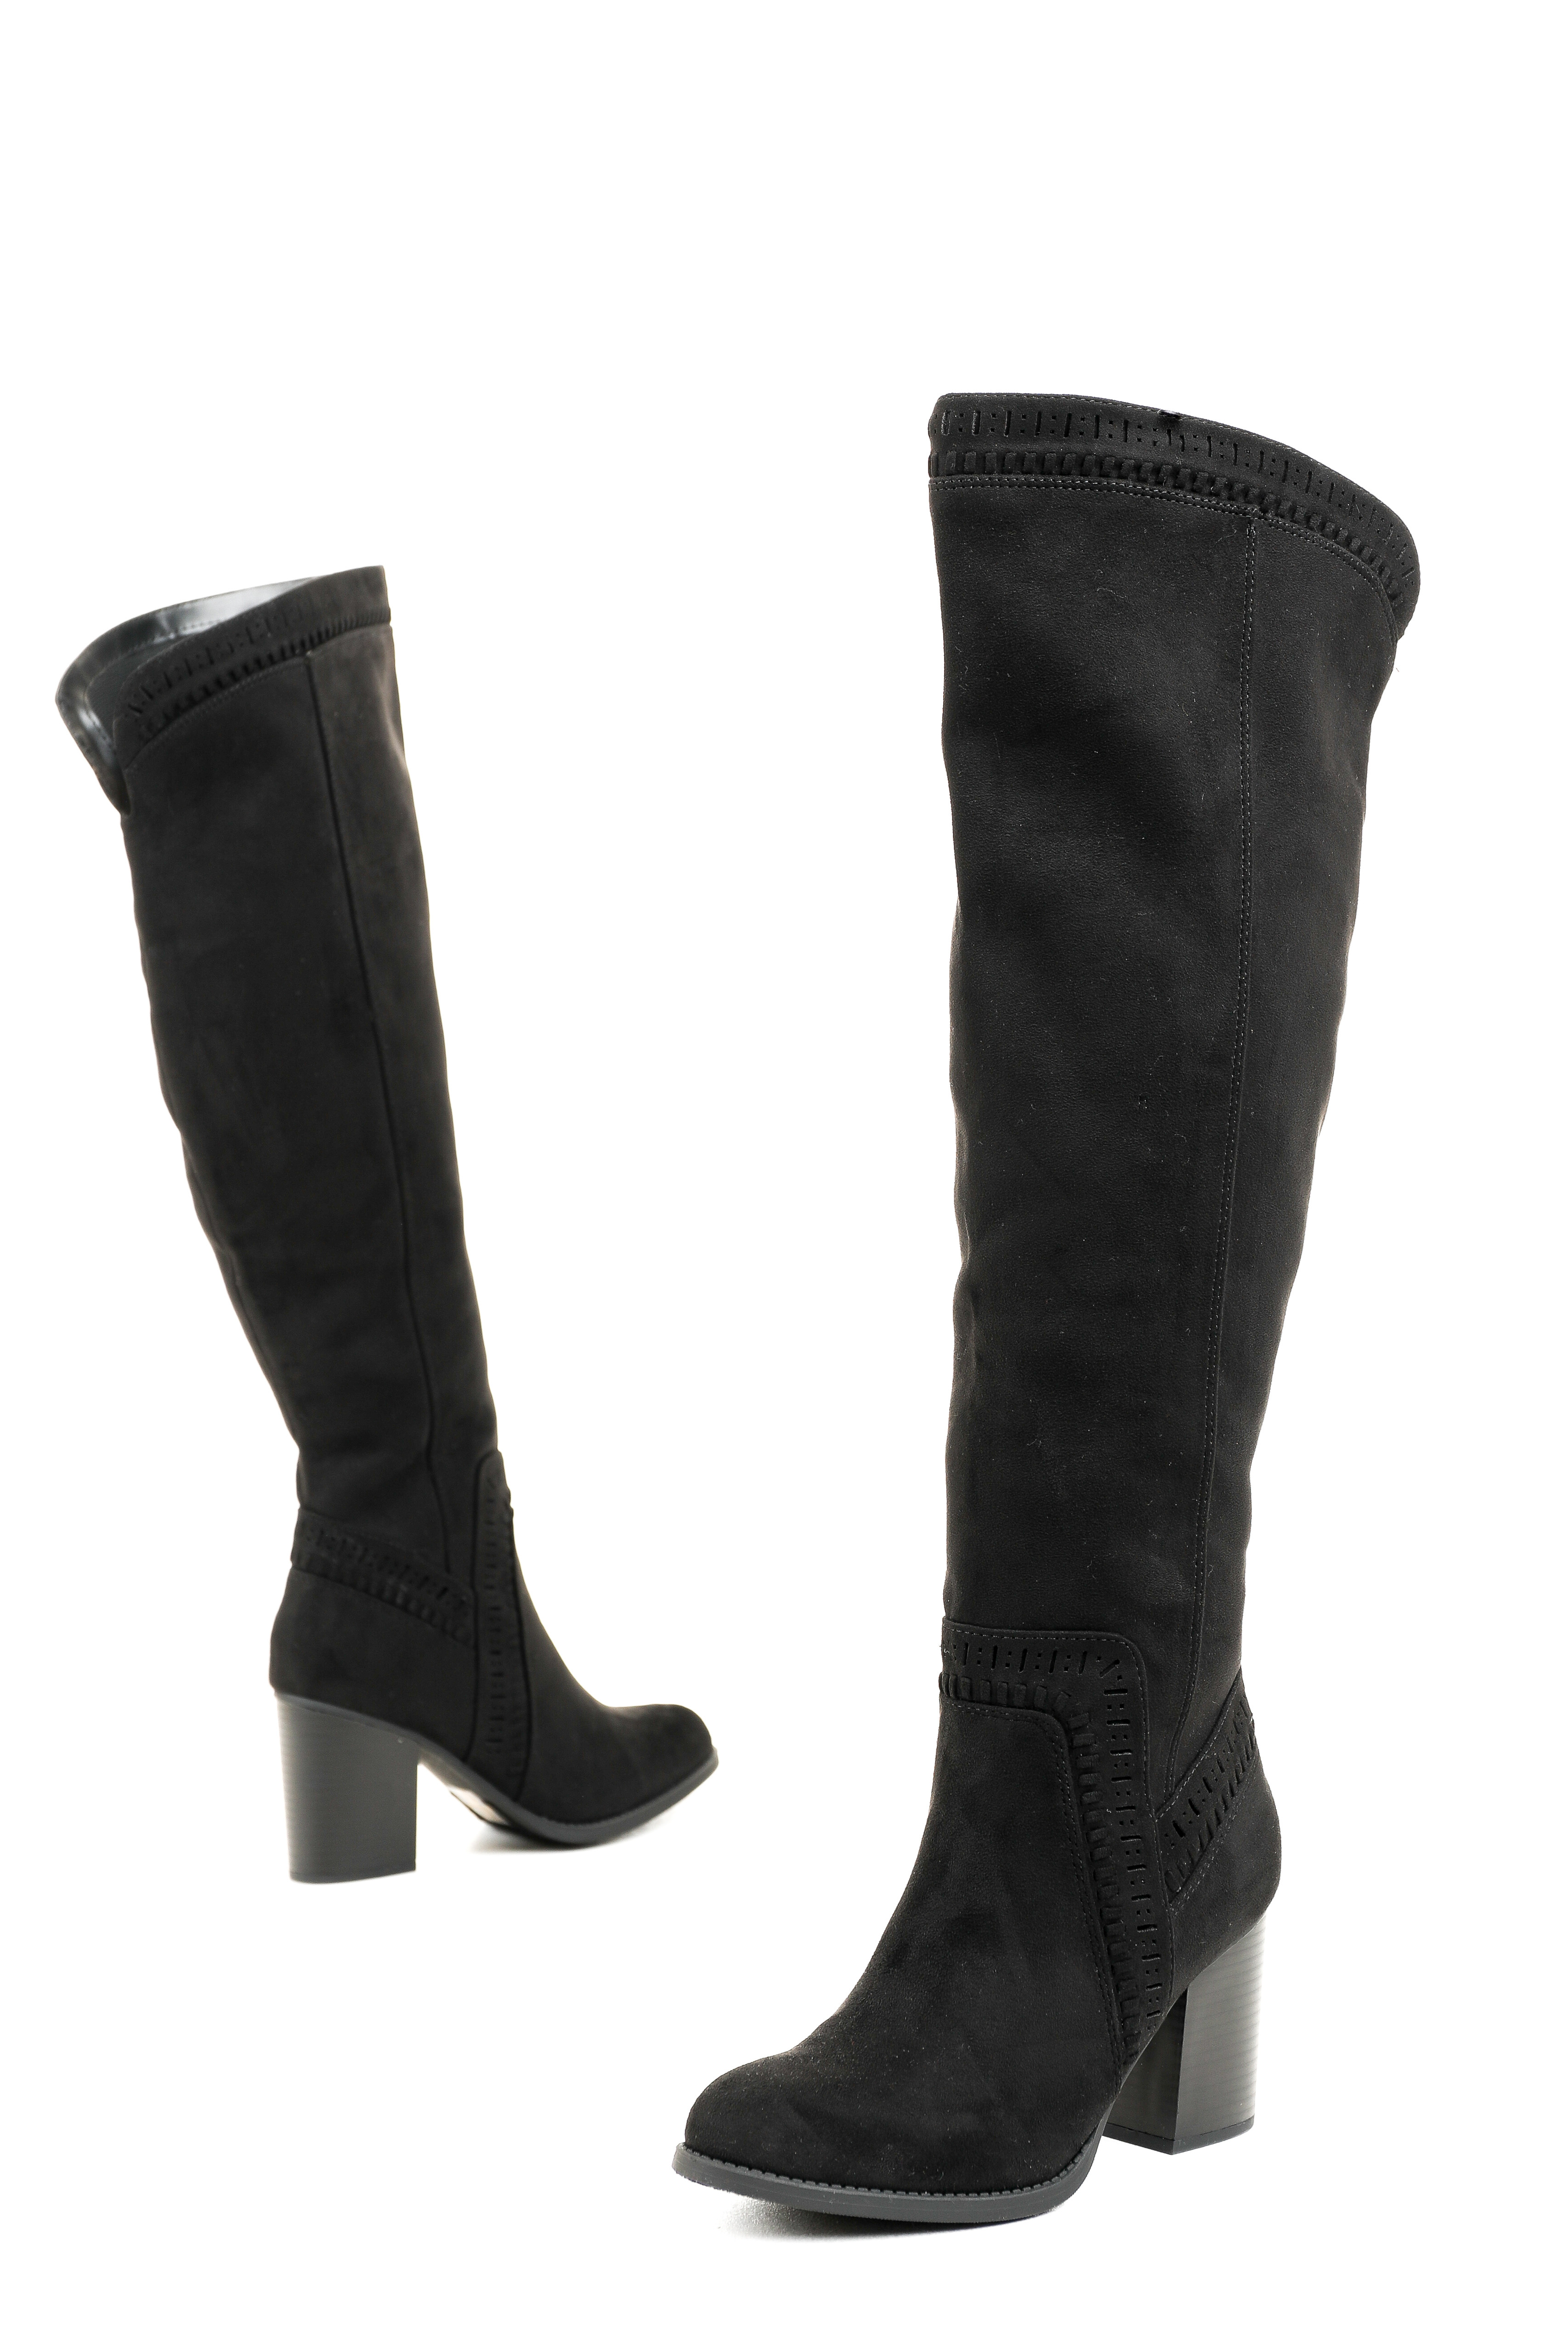 Black Faux Suede Western Style Knee High Heeled Boots